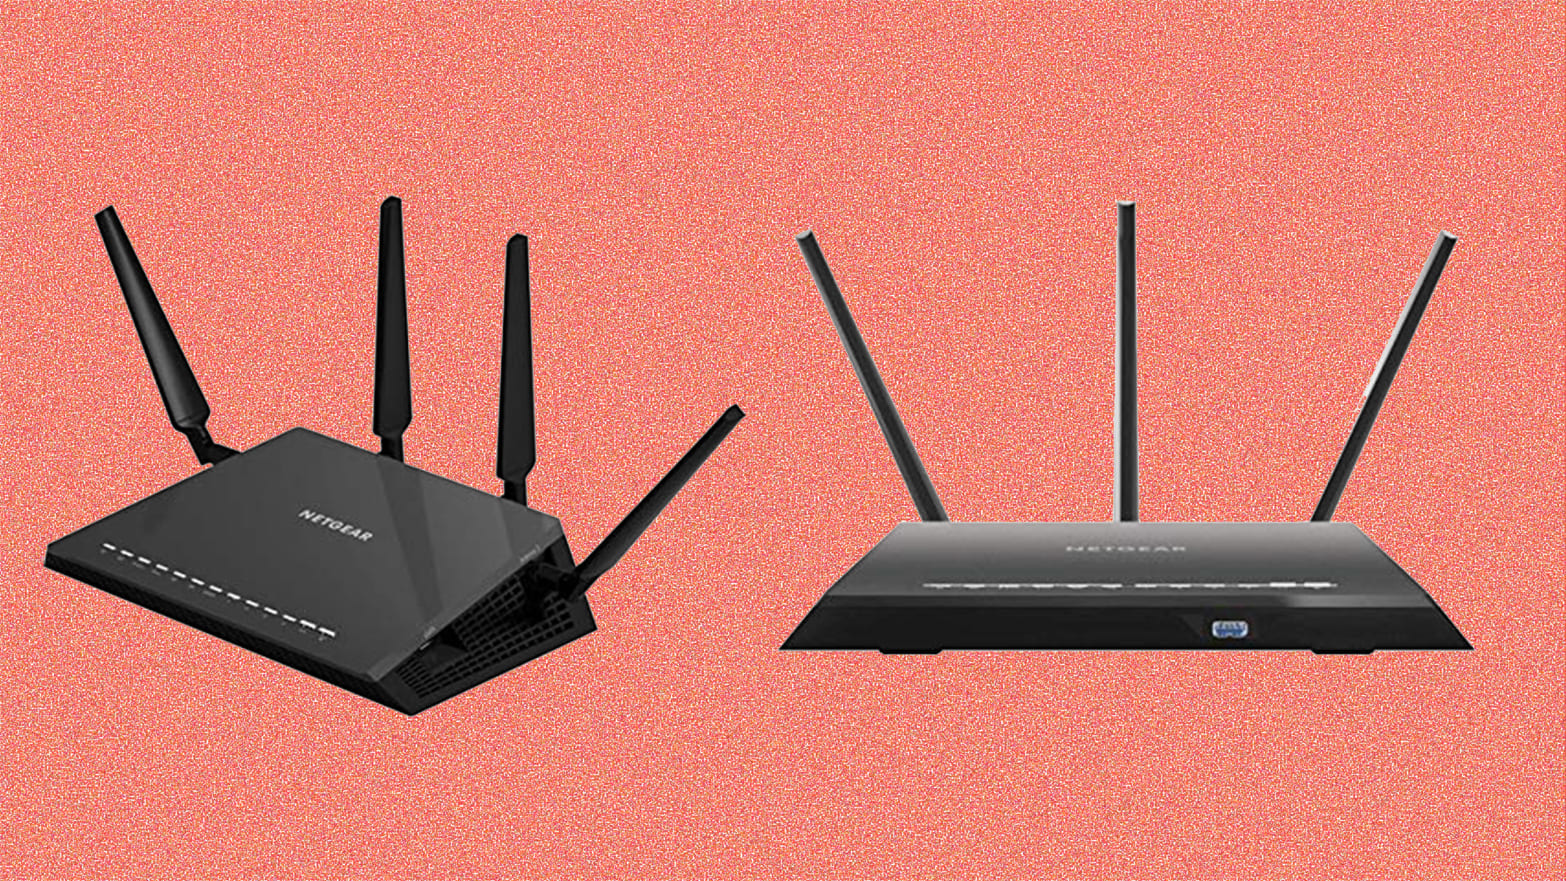 Amazon's Sale on WiFi Routers Saves You Up to 40% — And That Monthly Charge for Leasing Your Current One